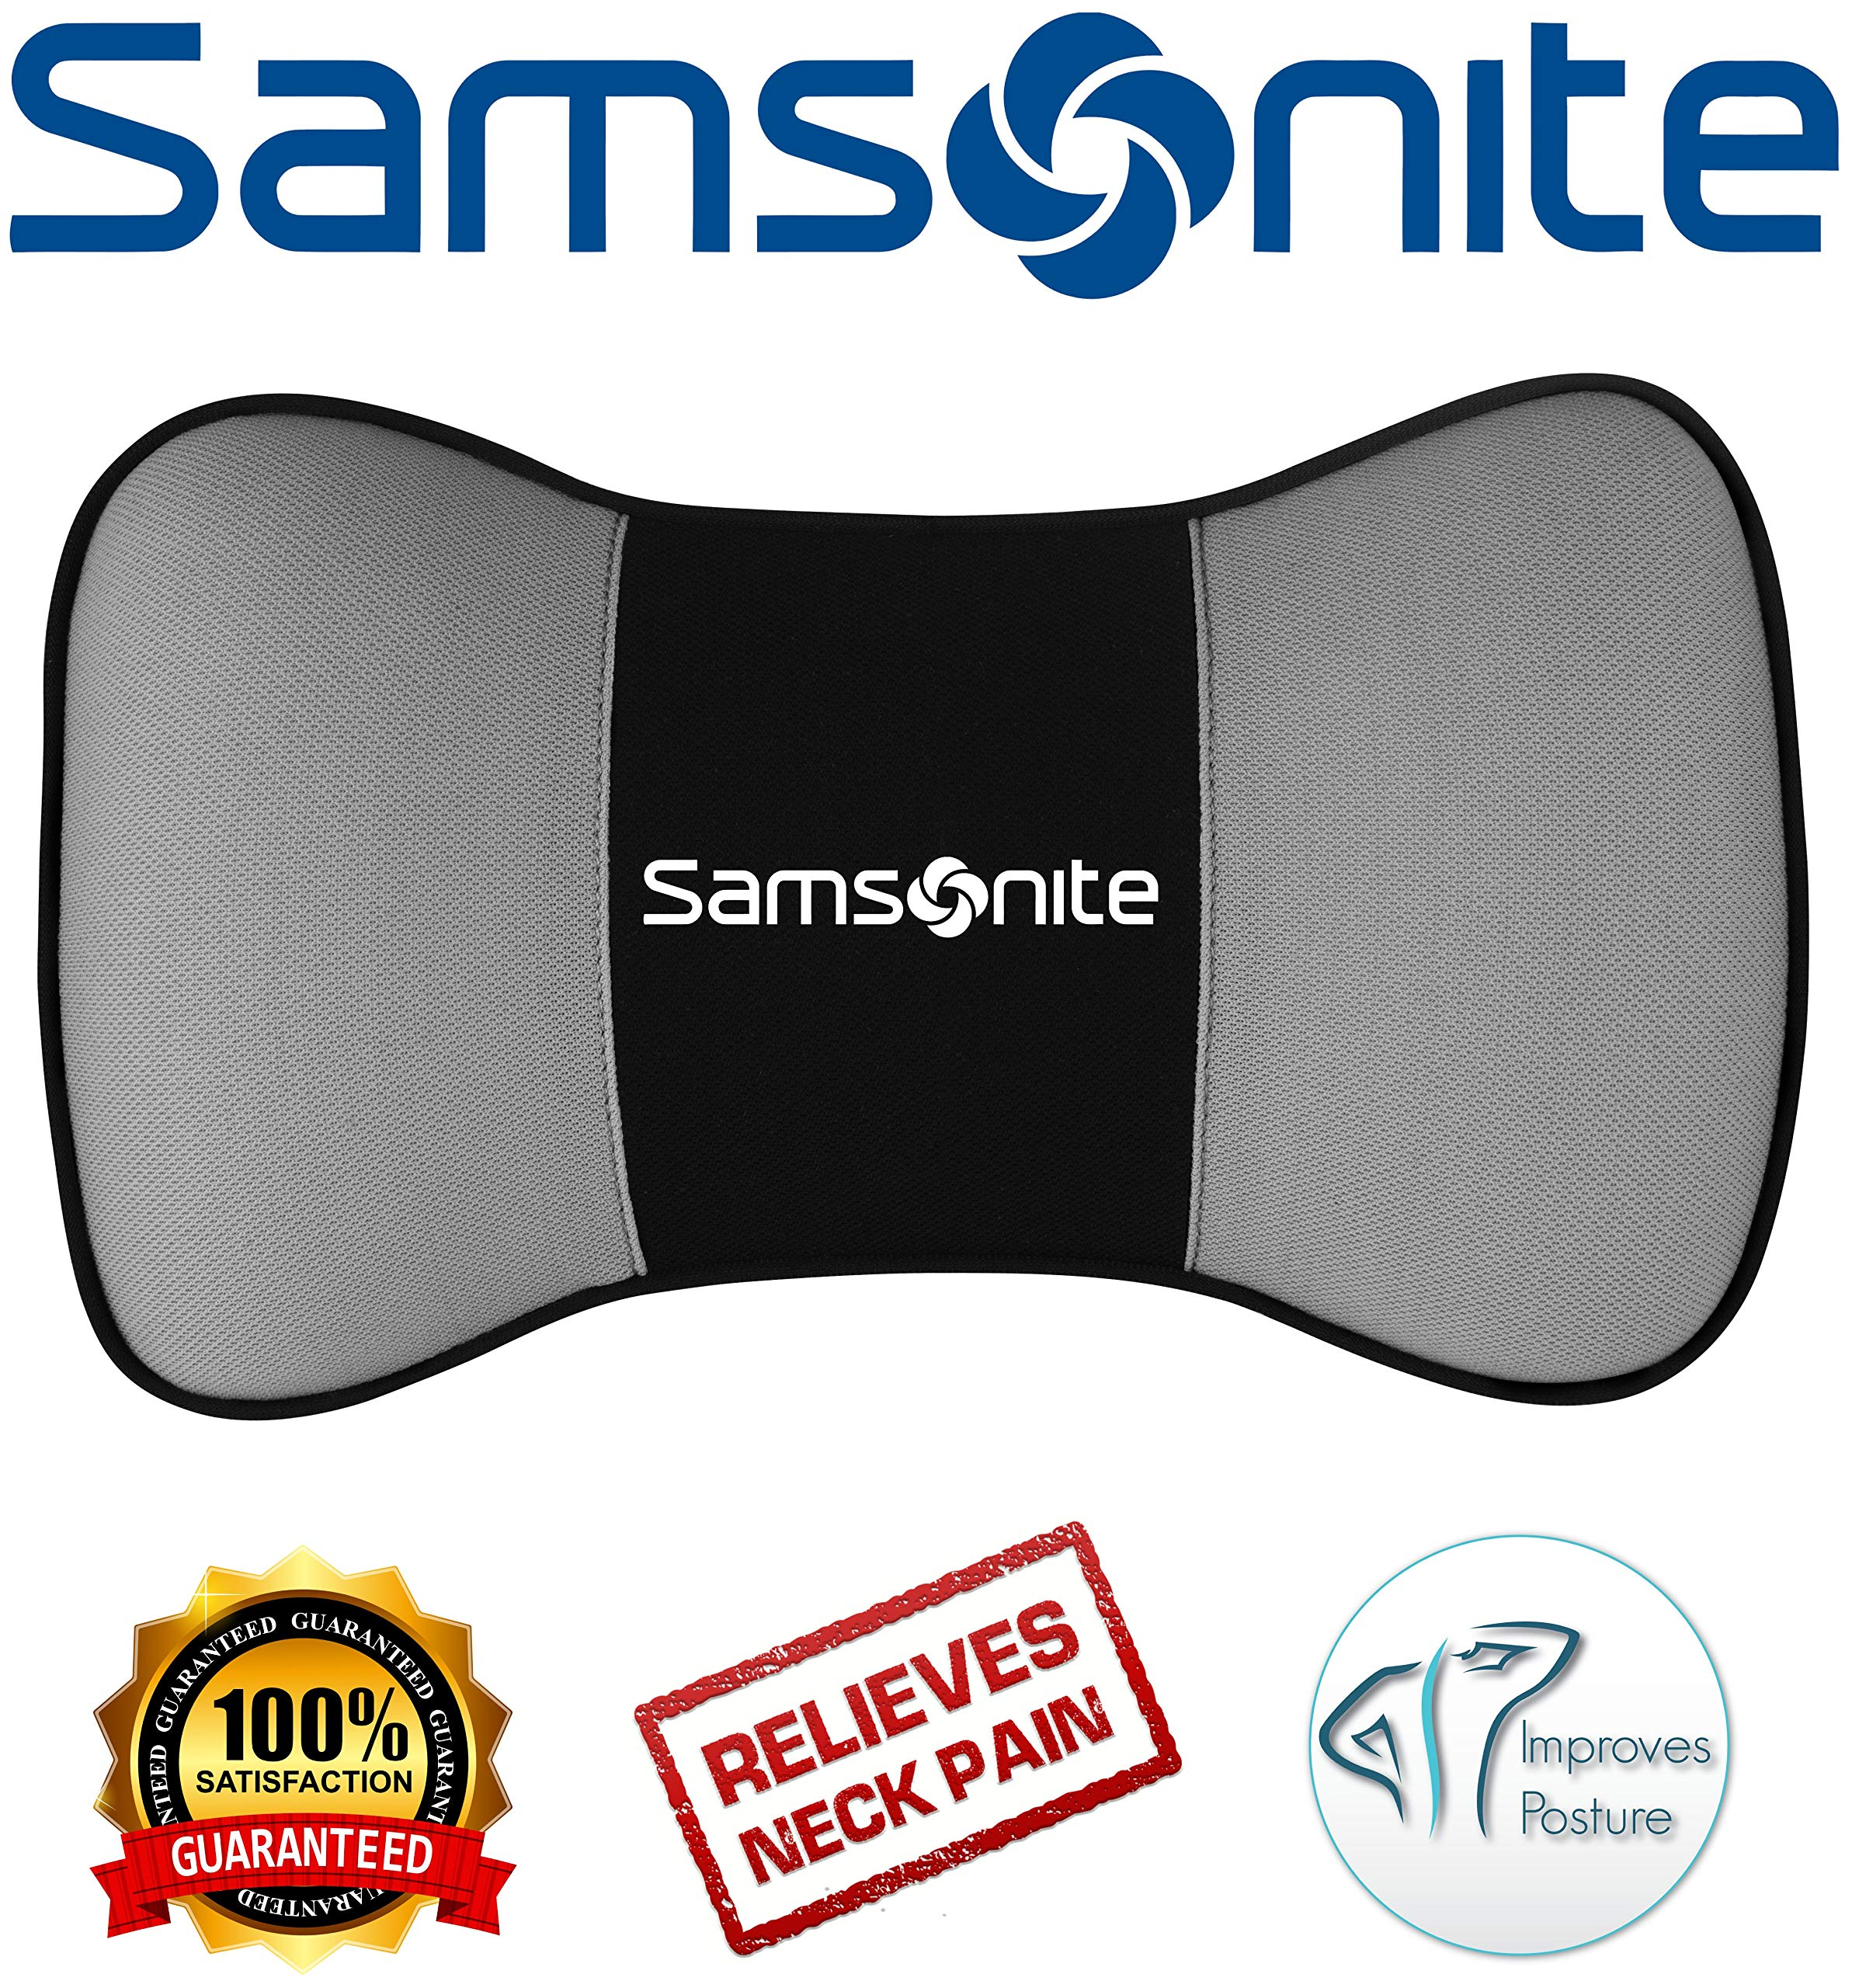 Samsonite SA5249  Travel Pillow for Car, SUV  Helps Relieve Neck Pain & Improve Circulation @% Pure Memory Foam  Fits Most Vehicles